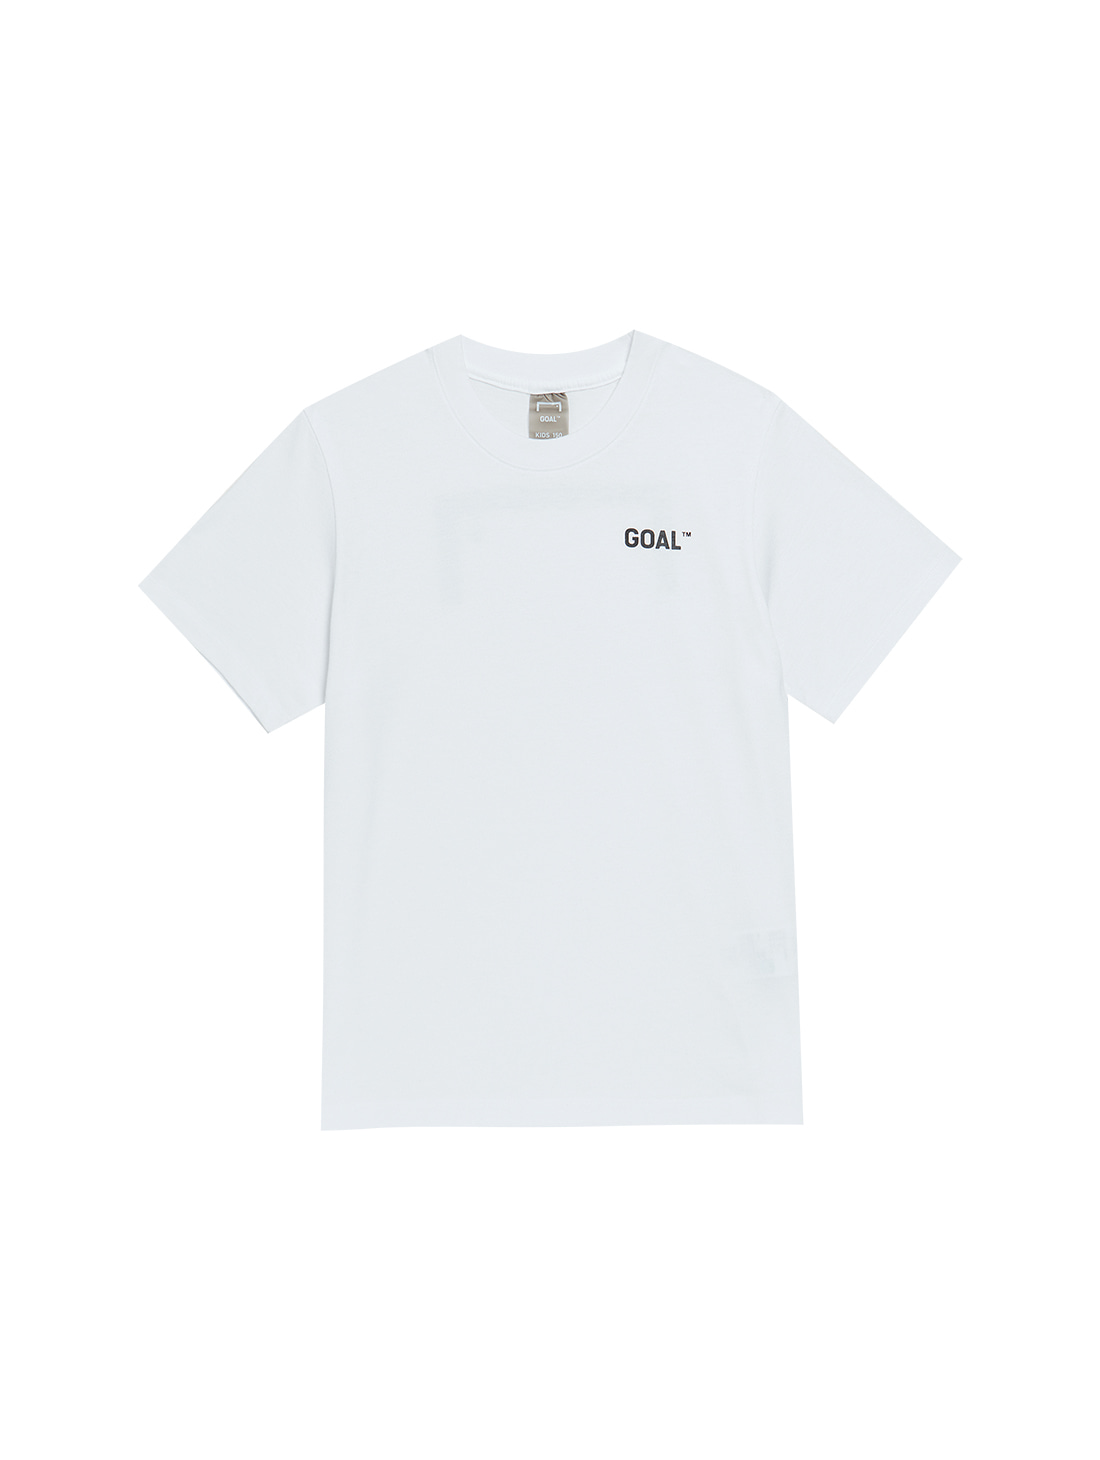 (KIDS) TEXT LOGO TEE - WHITE